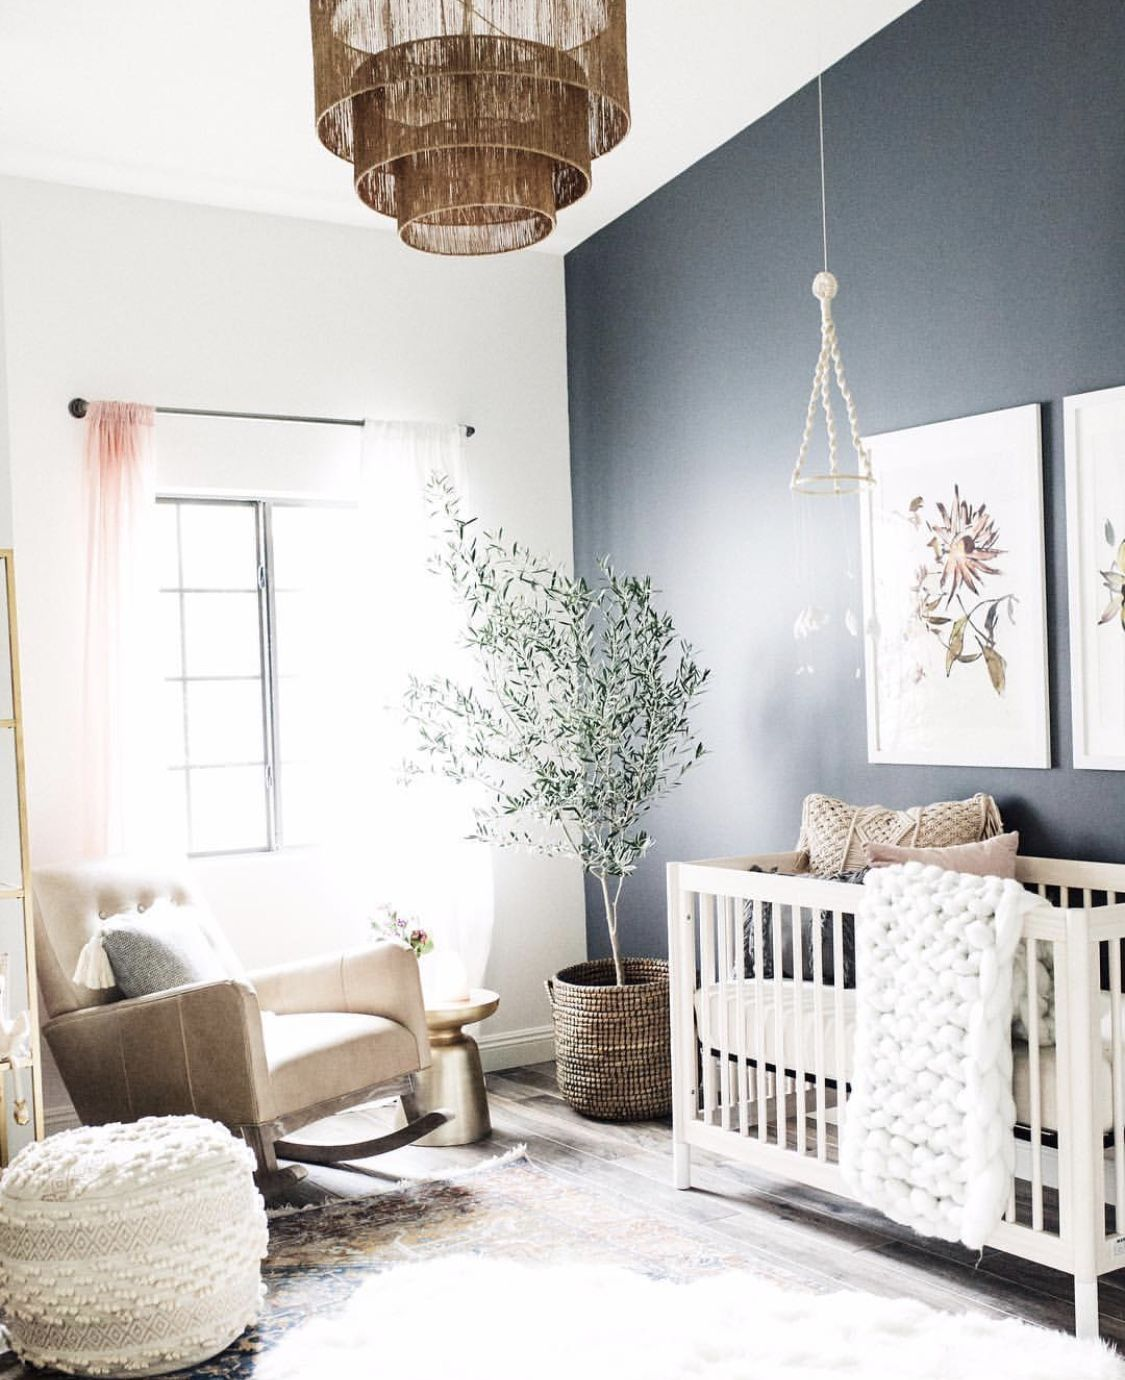 Pin by haley herbst on baby girl pinterest - Sillones habitacion bebe ...